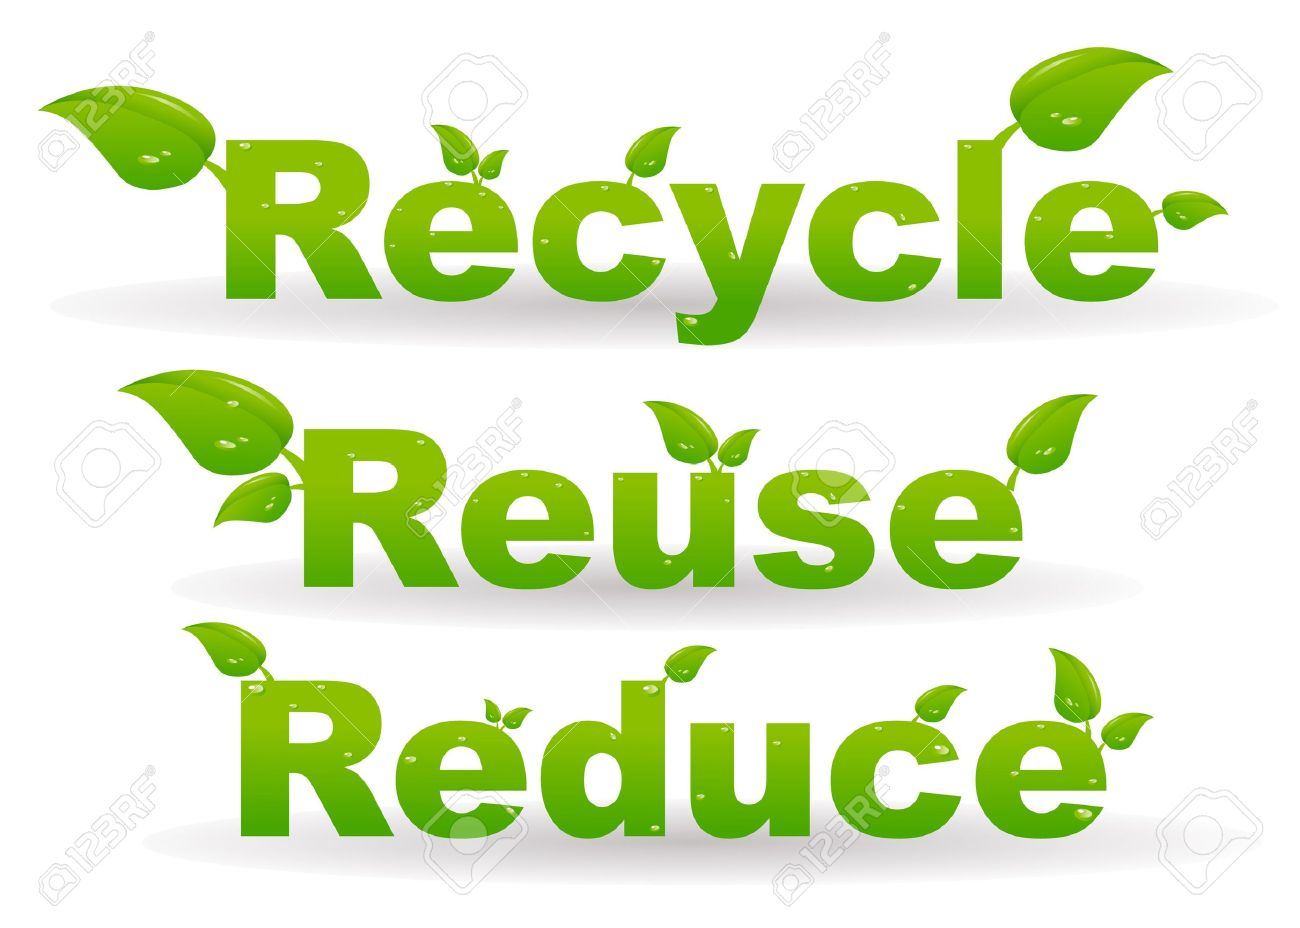 1300x928 Recycle Background Royalty Free Cliparts, Vectors, And Stock